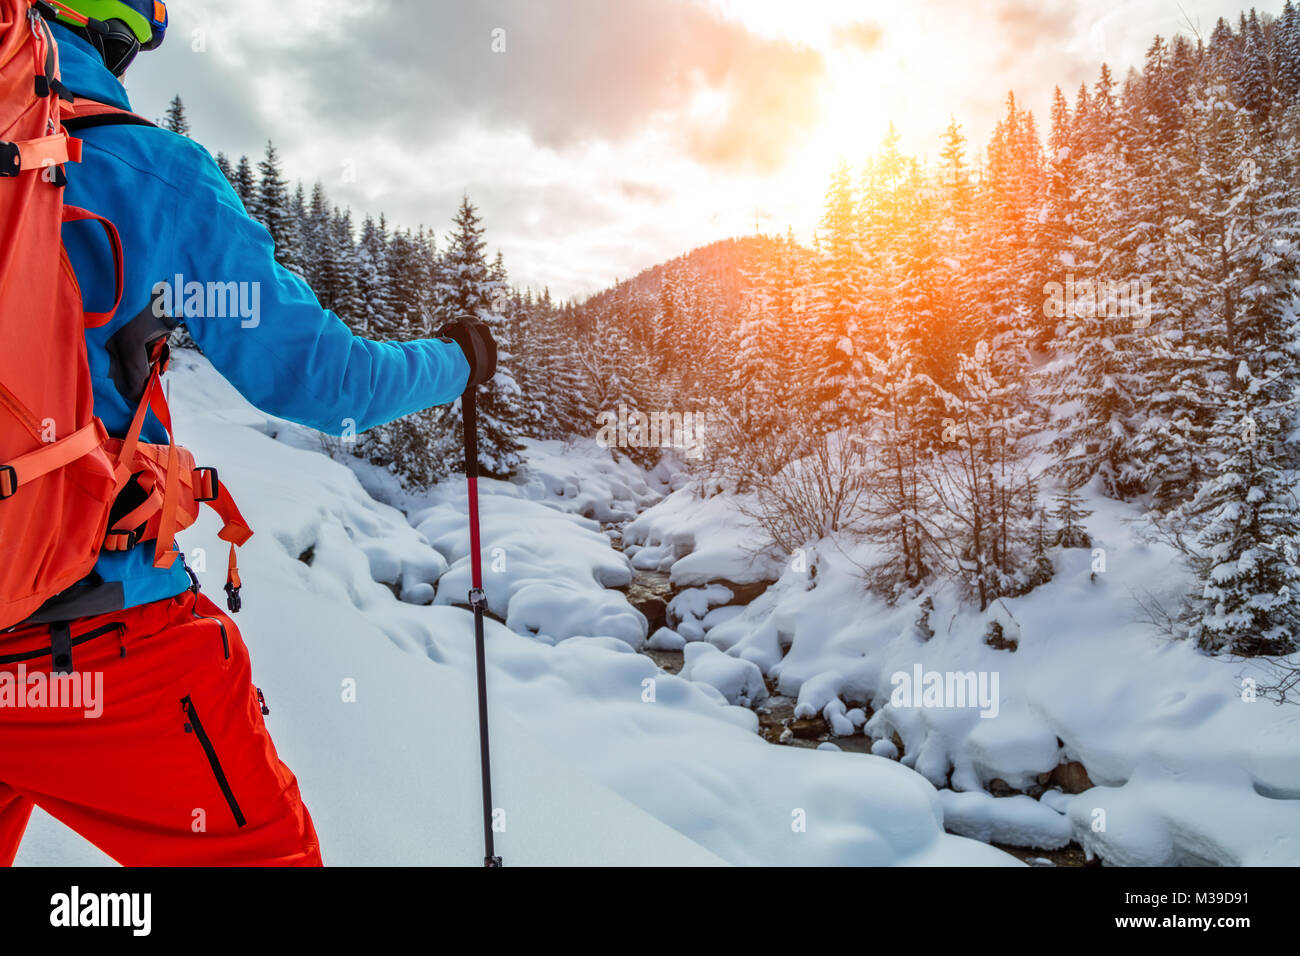 CLoseup of young man walking on snowshoes in powder snow. European Alpine scenery, winter sports and activities - Stock Image